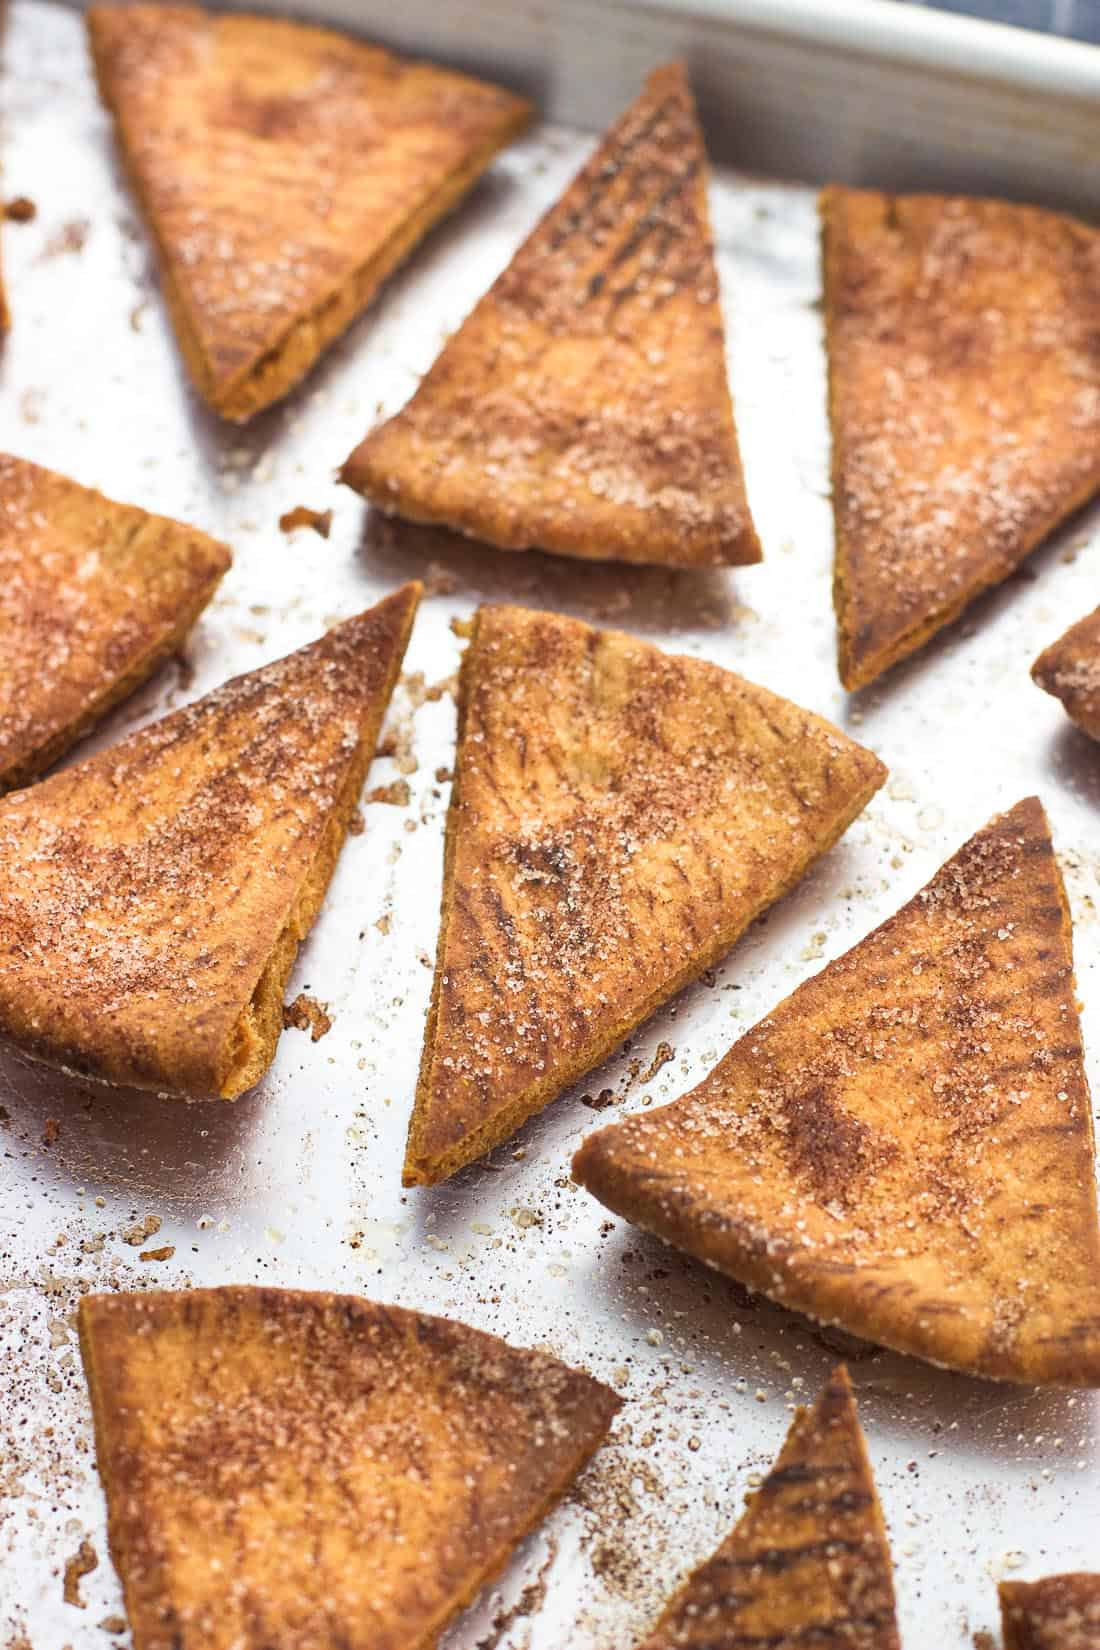 Baked cinnamon sugar pita chips on a foil-lined baking sheet